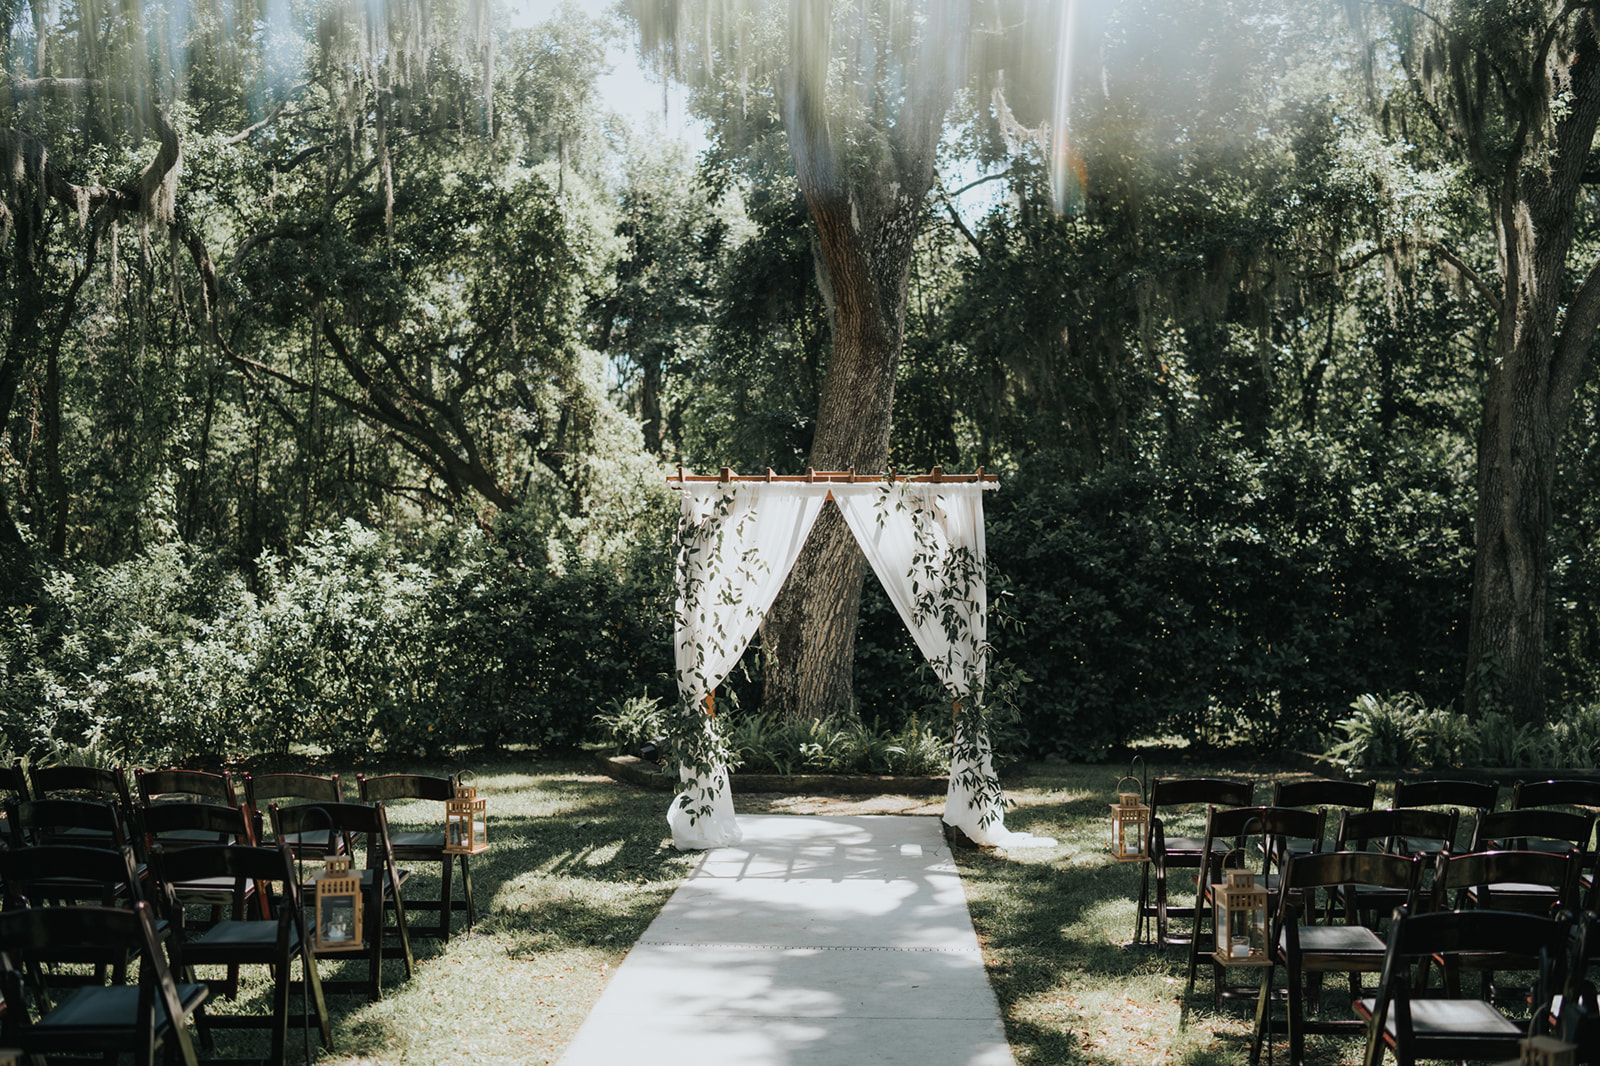 Jacob_Darrian_Bakers Ranch Wedding (1).jpg